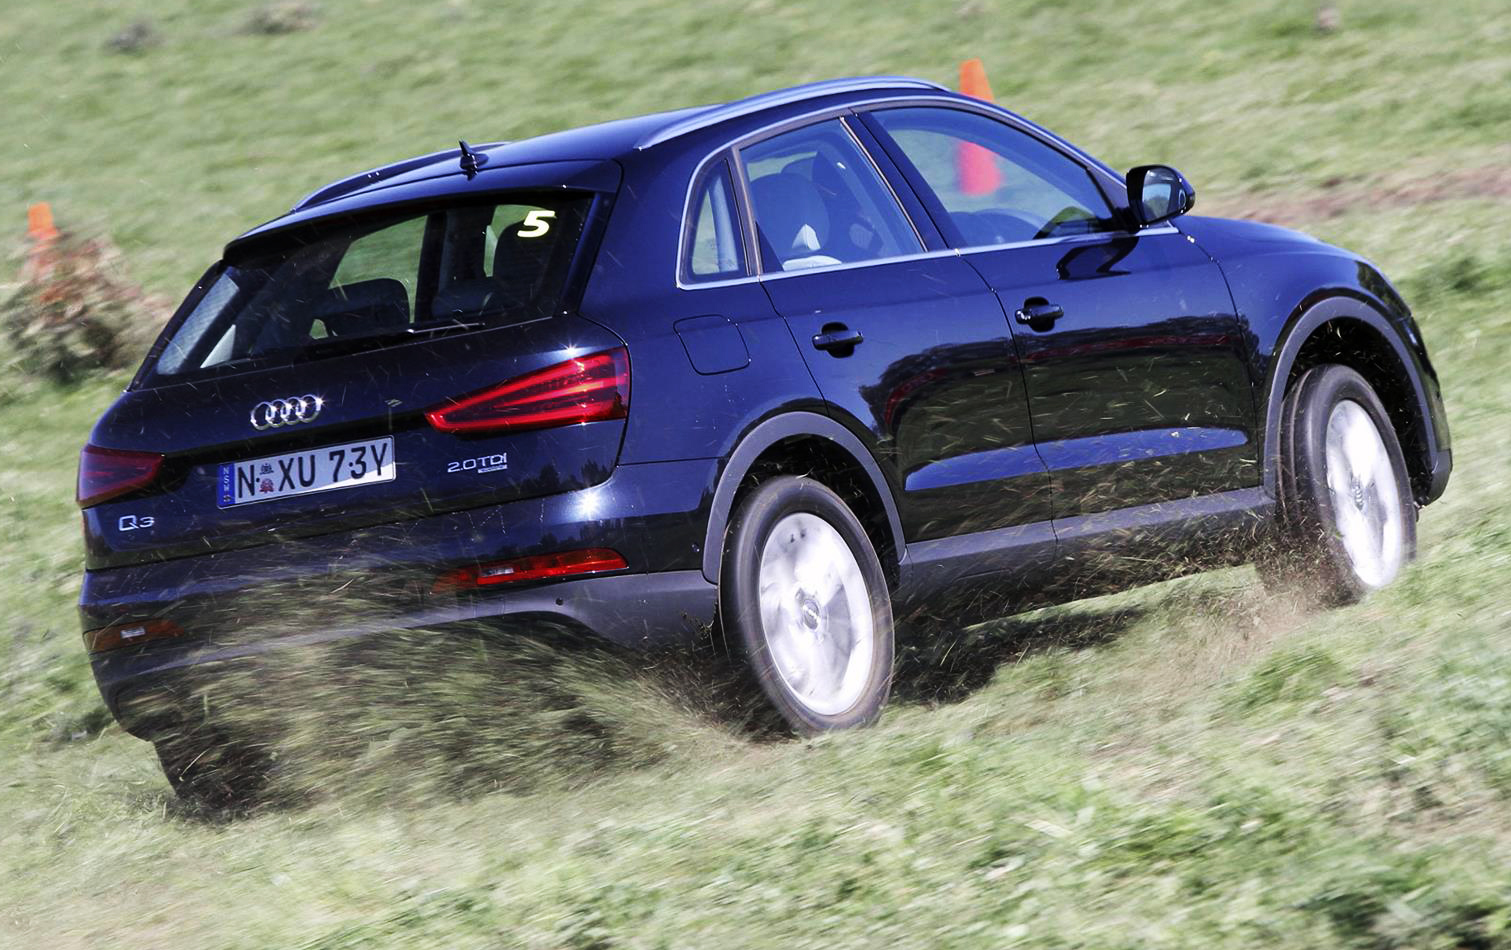 2013 Audi Quattro Review: A4 Sedan, A5 Coupe, Q3 SUV